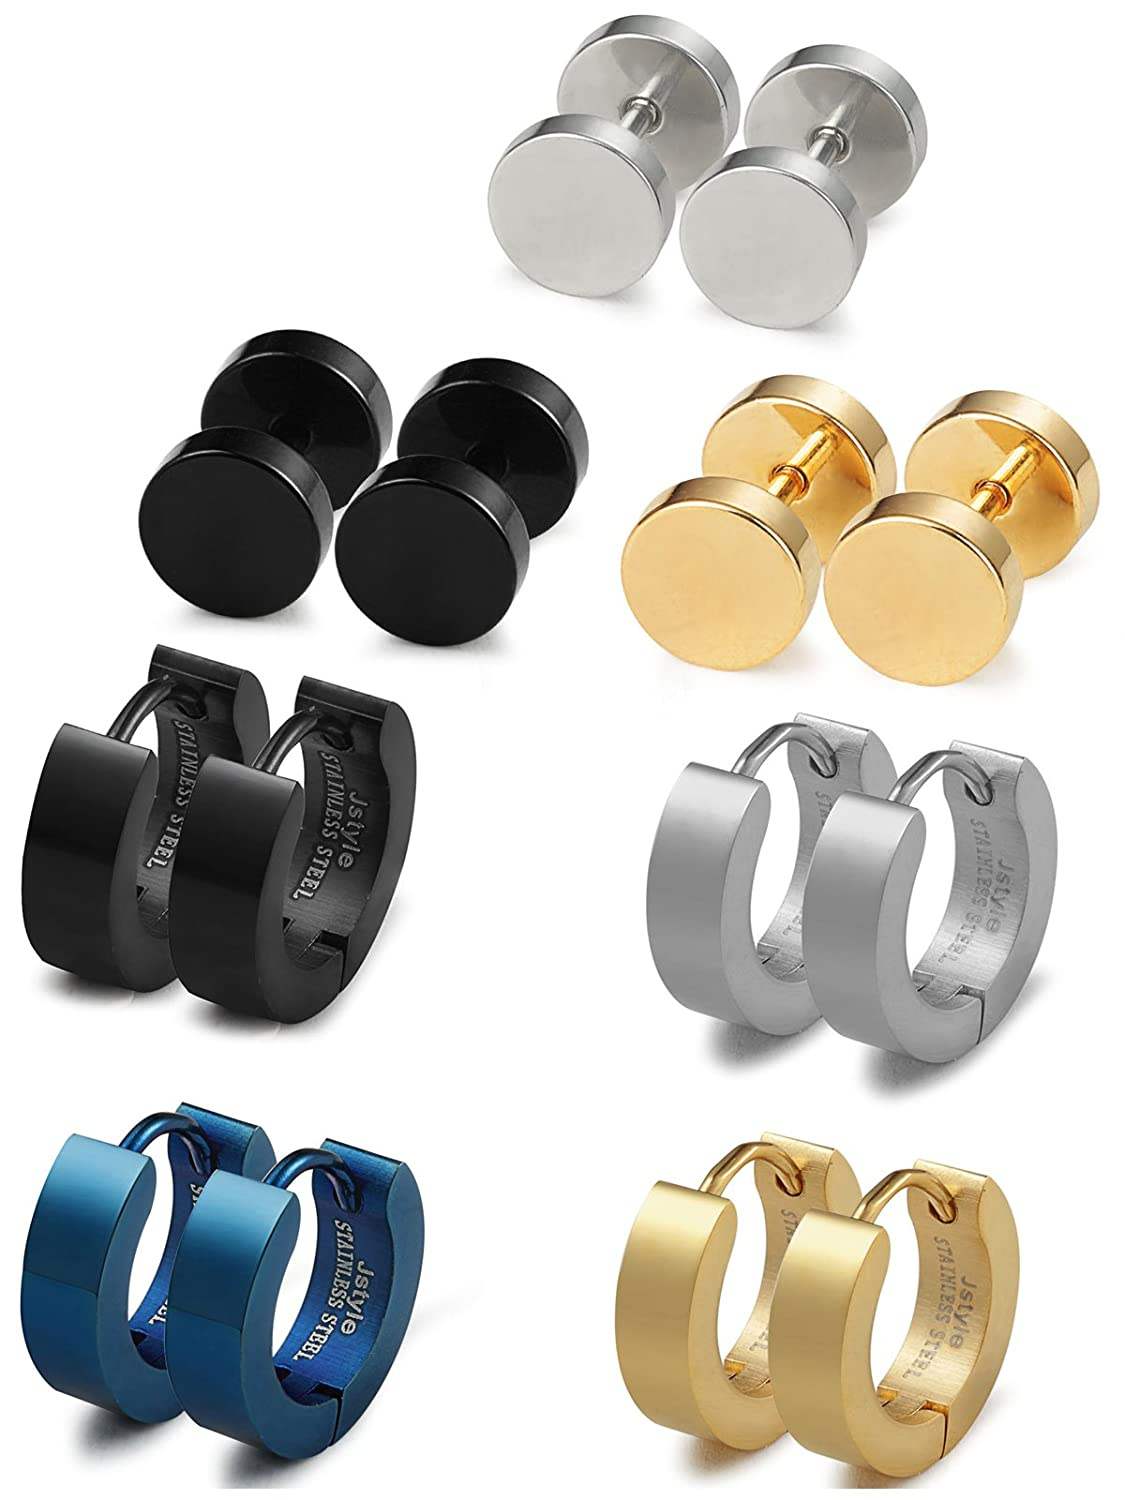 Jstyle Stainless Steel Mens Womens Stud Earrings Hoop Earrings for Men Piercing 7 Pairs